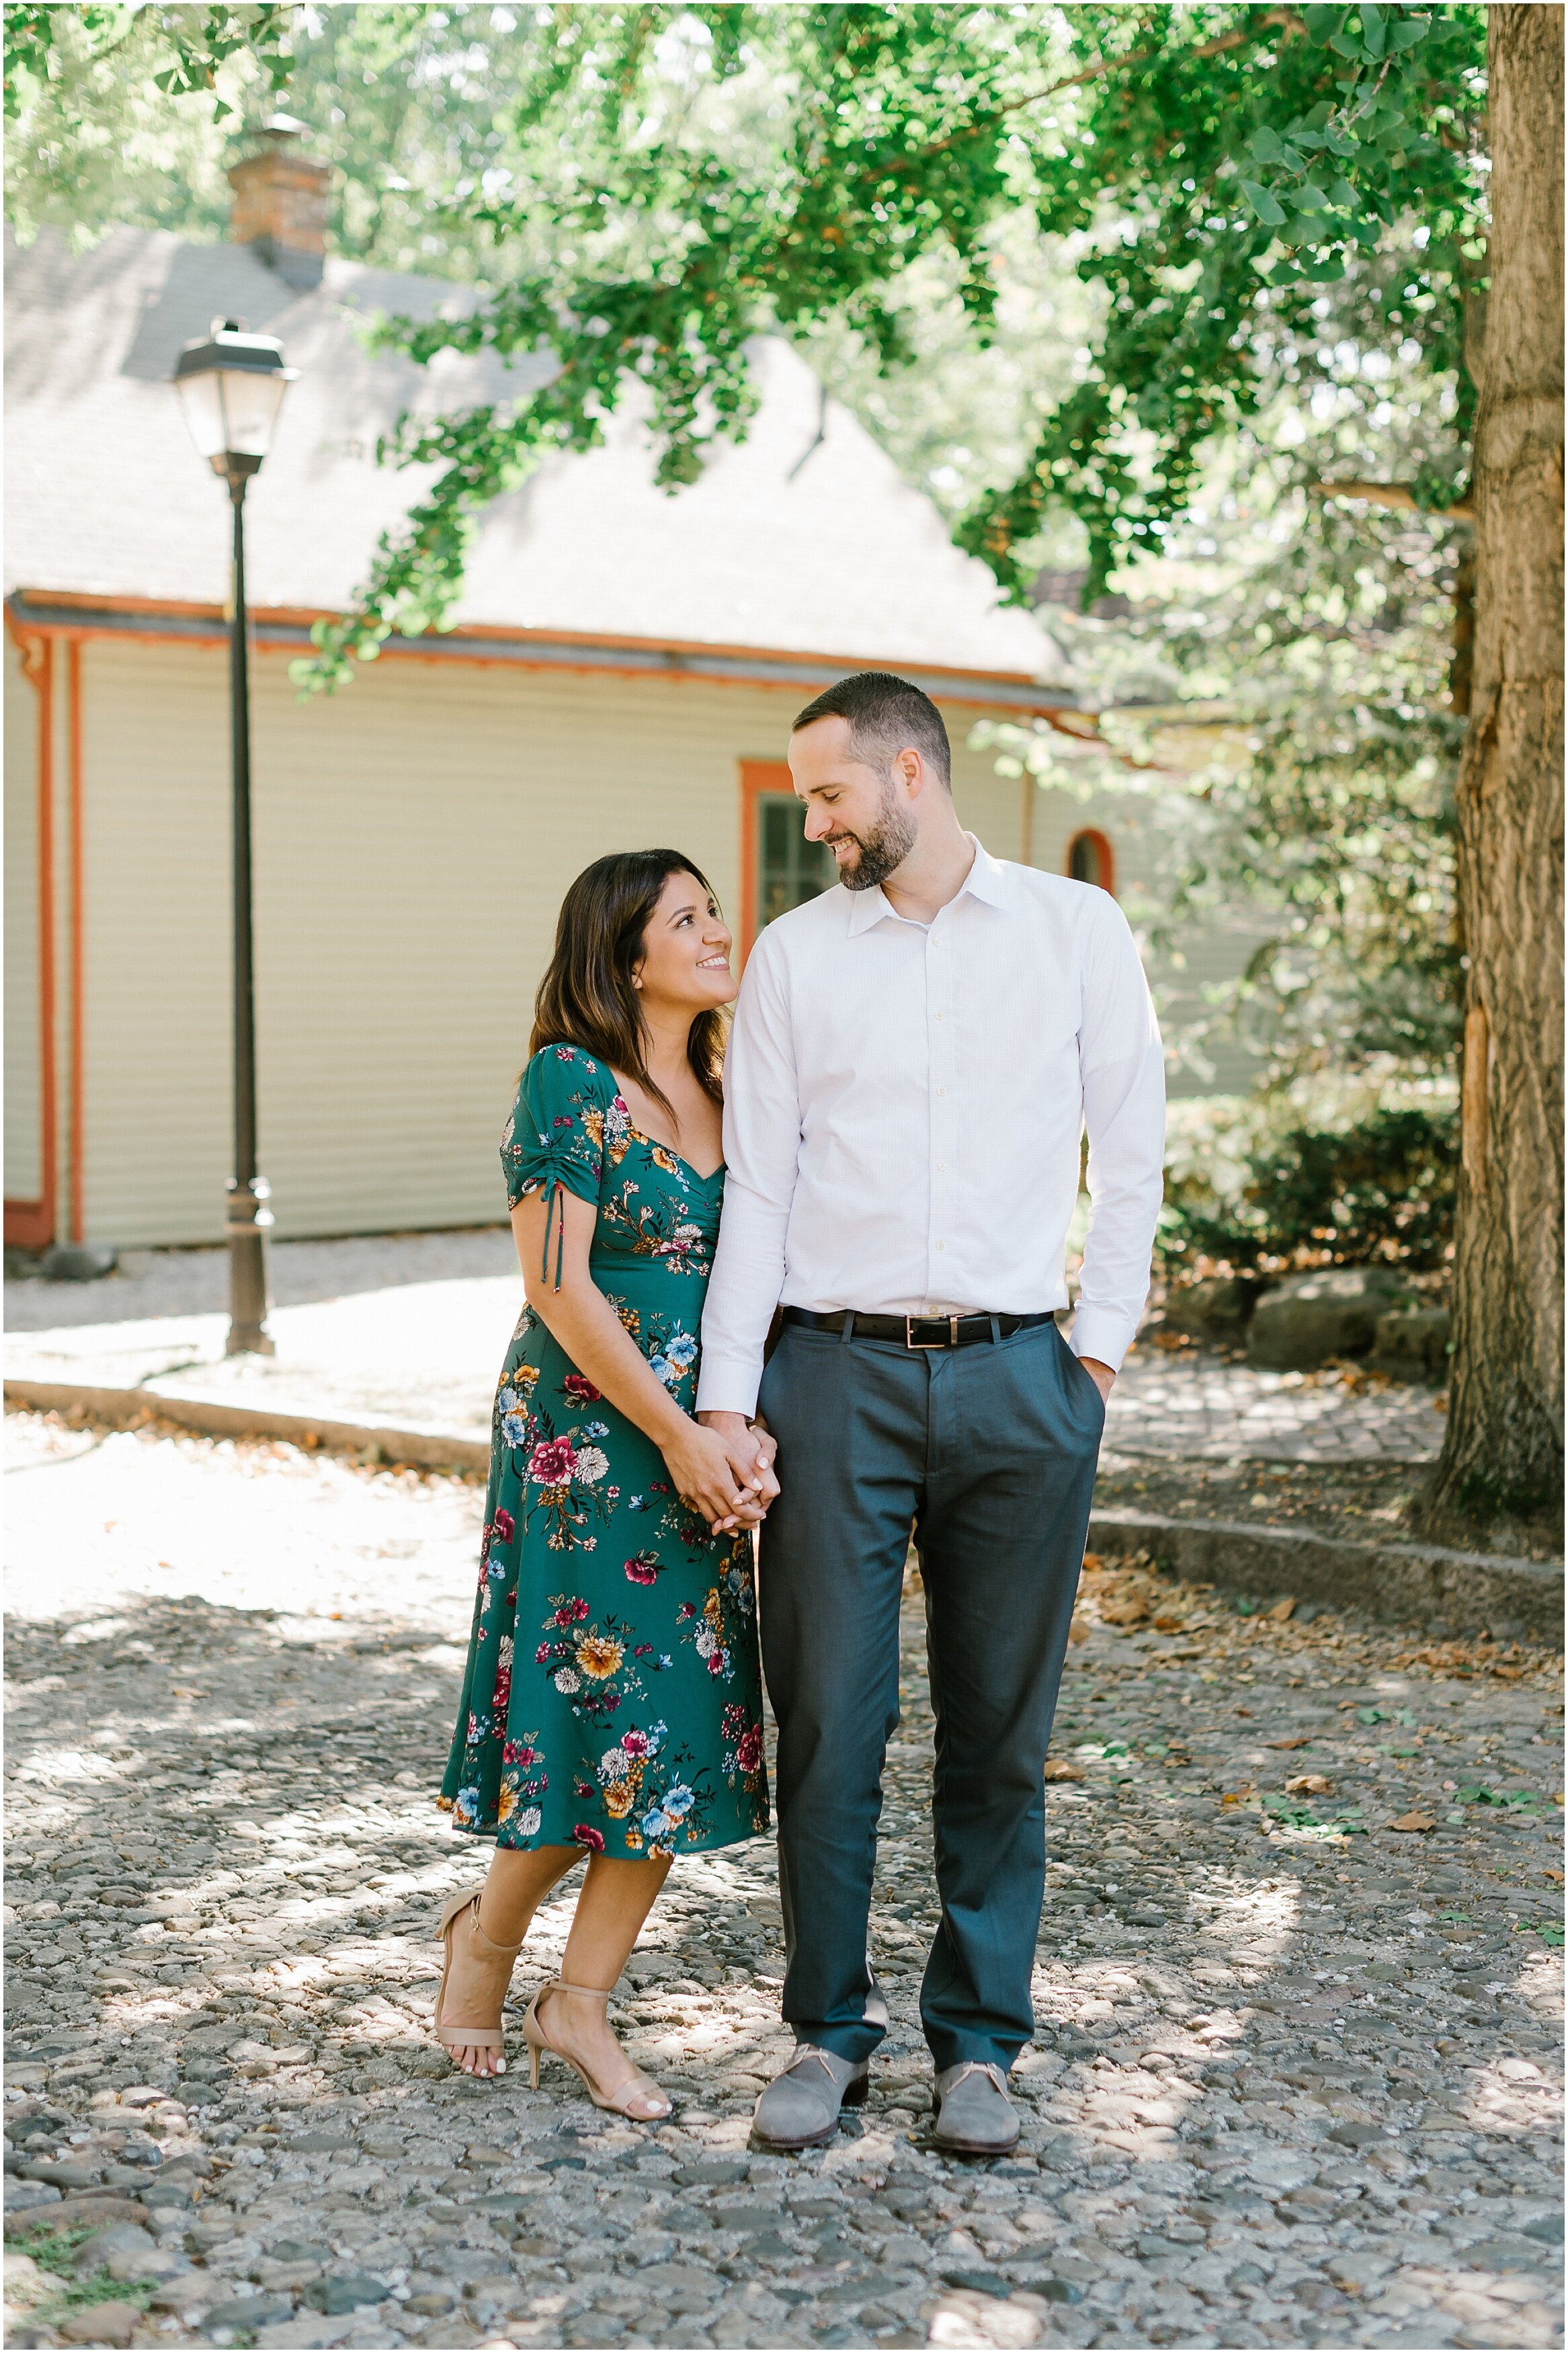 Rebecca Shehorn Photography Indianapolis Wedding Photographer Belen and Colin Engagement Session_0819.jpg